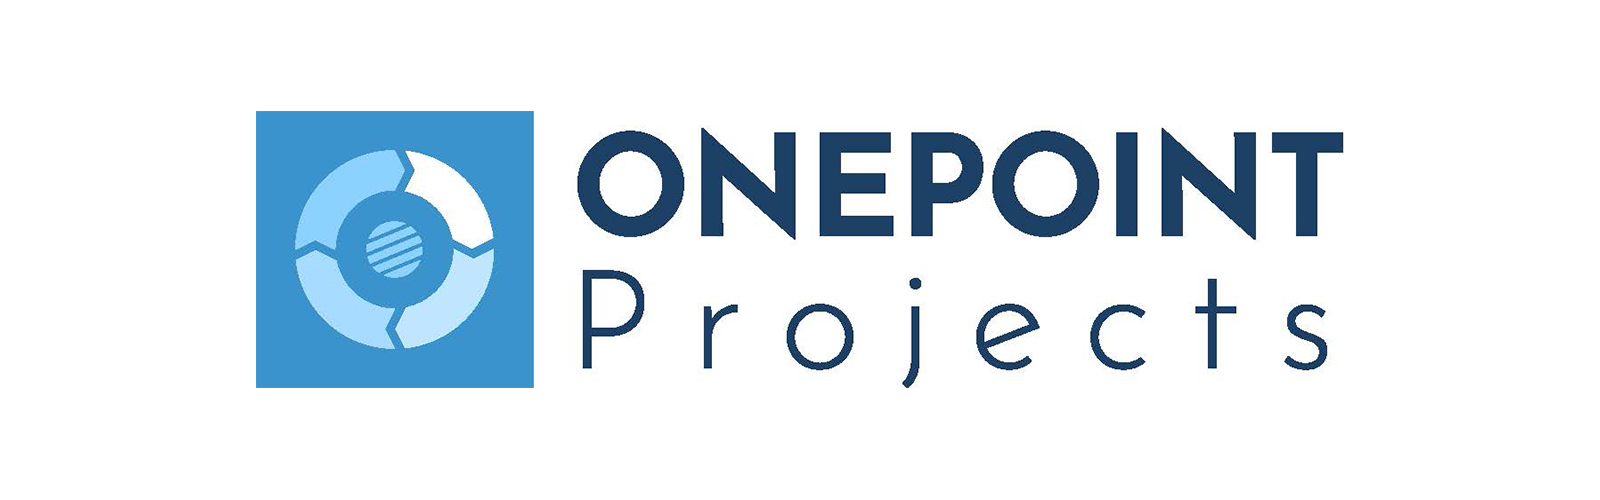 onepoint projects